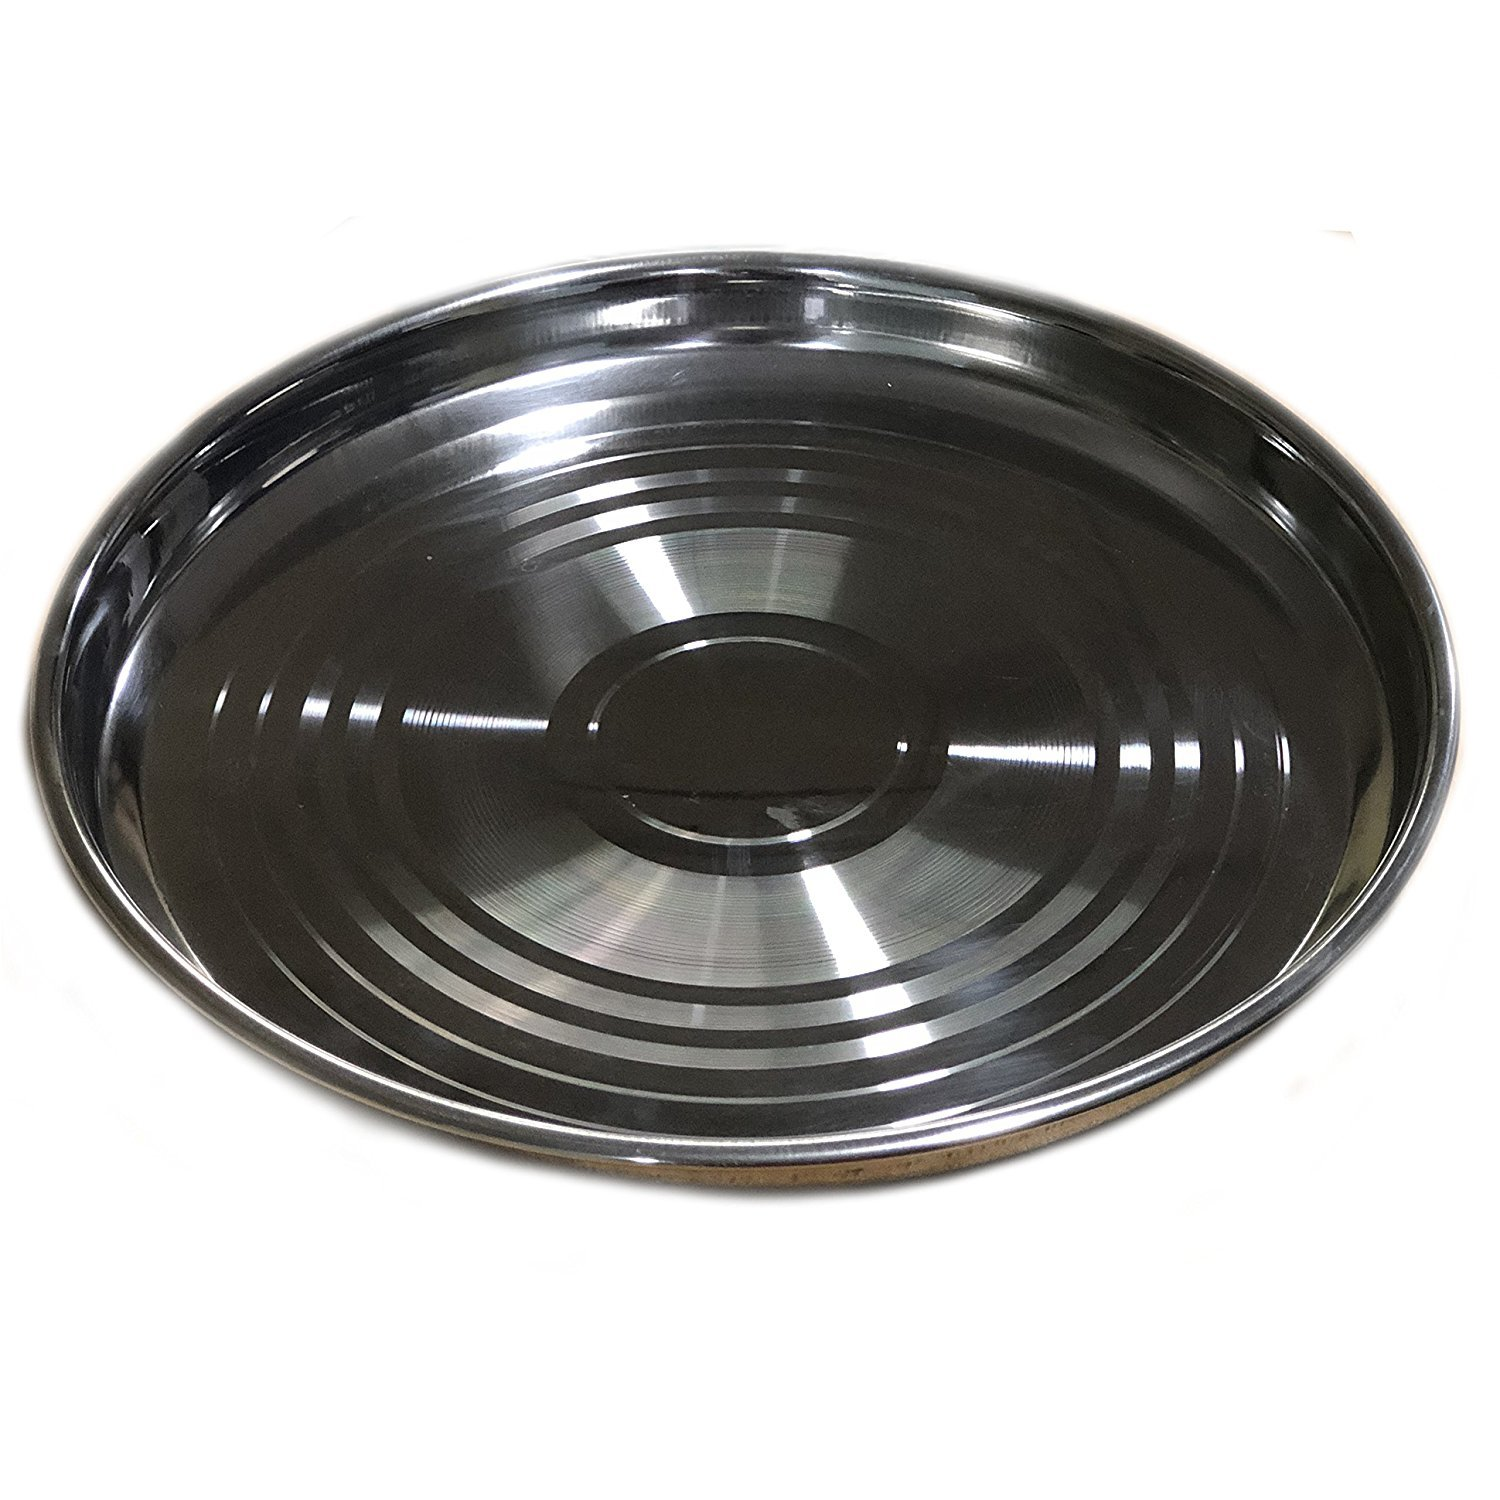 Khandekar Stainless Steel Round Strip Design Plates,Tableware Round Dish Plates For Dinner with device of K Silver Color Size 11.5 X 11.5 Inch